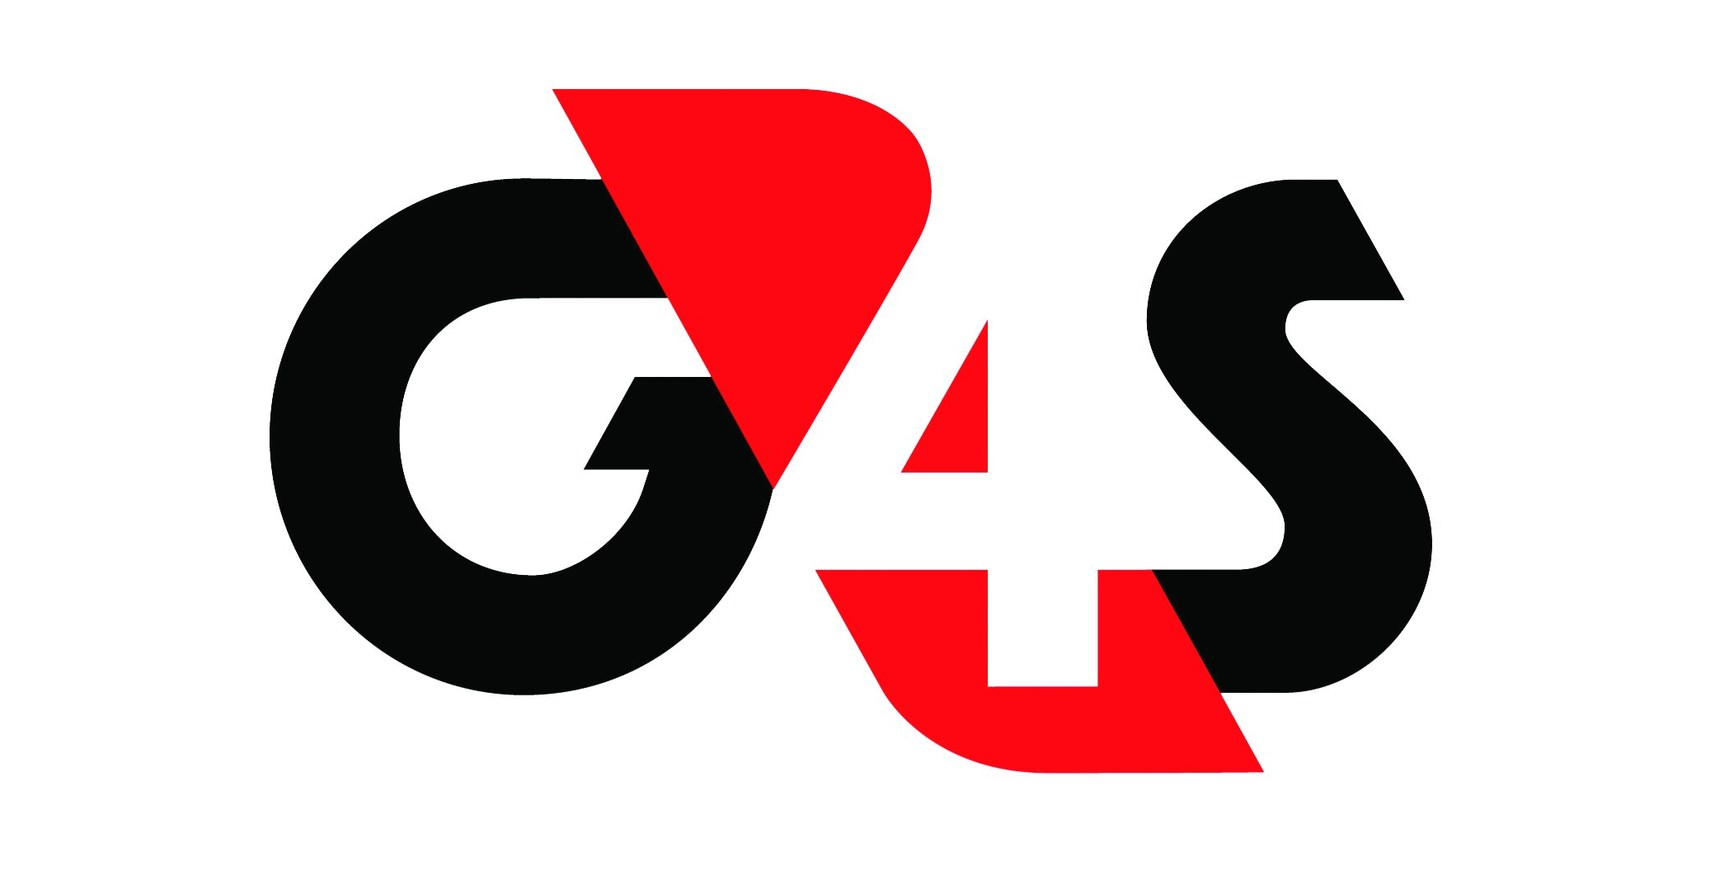 G4S Secure Solutions Inc.'s logo